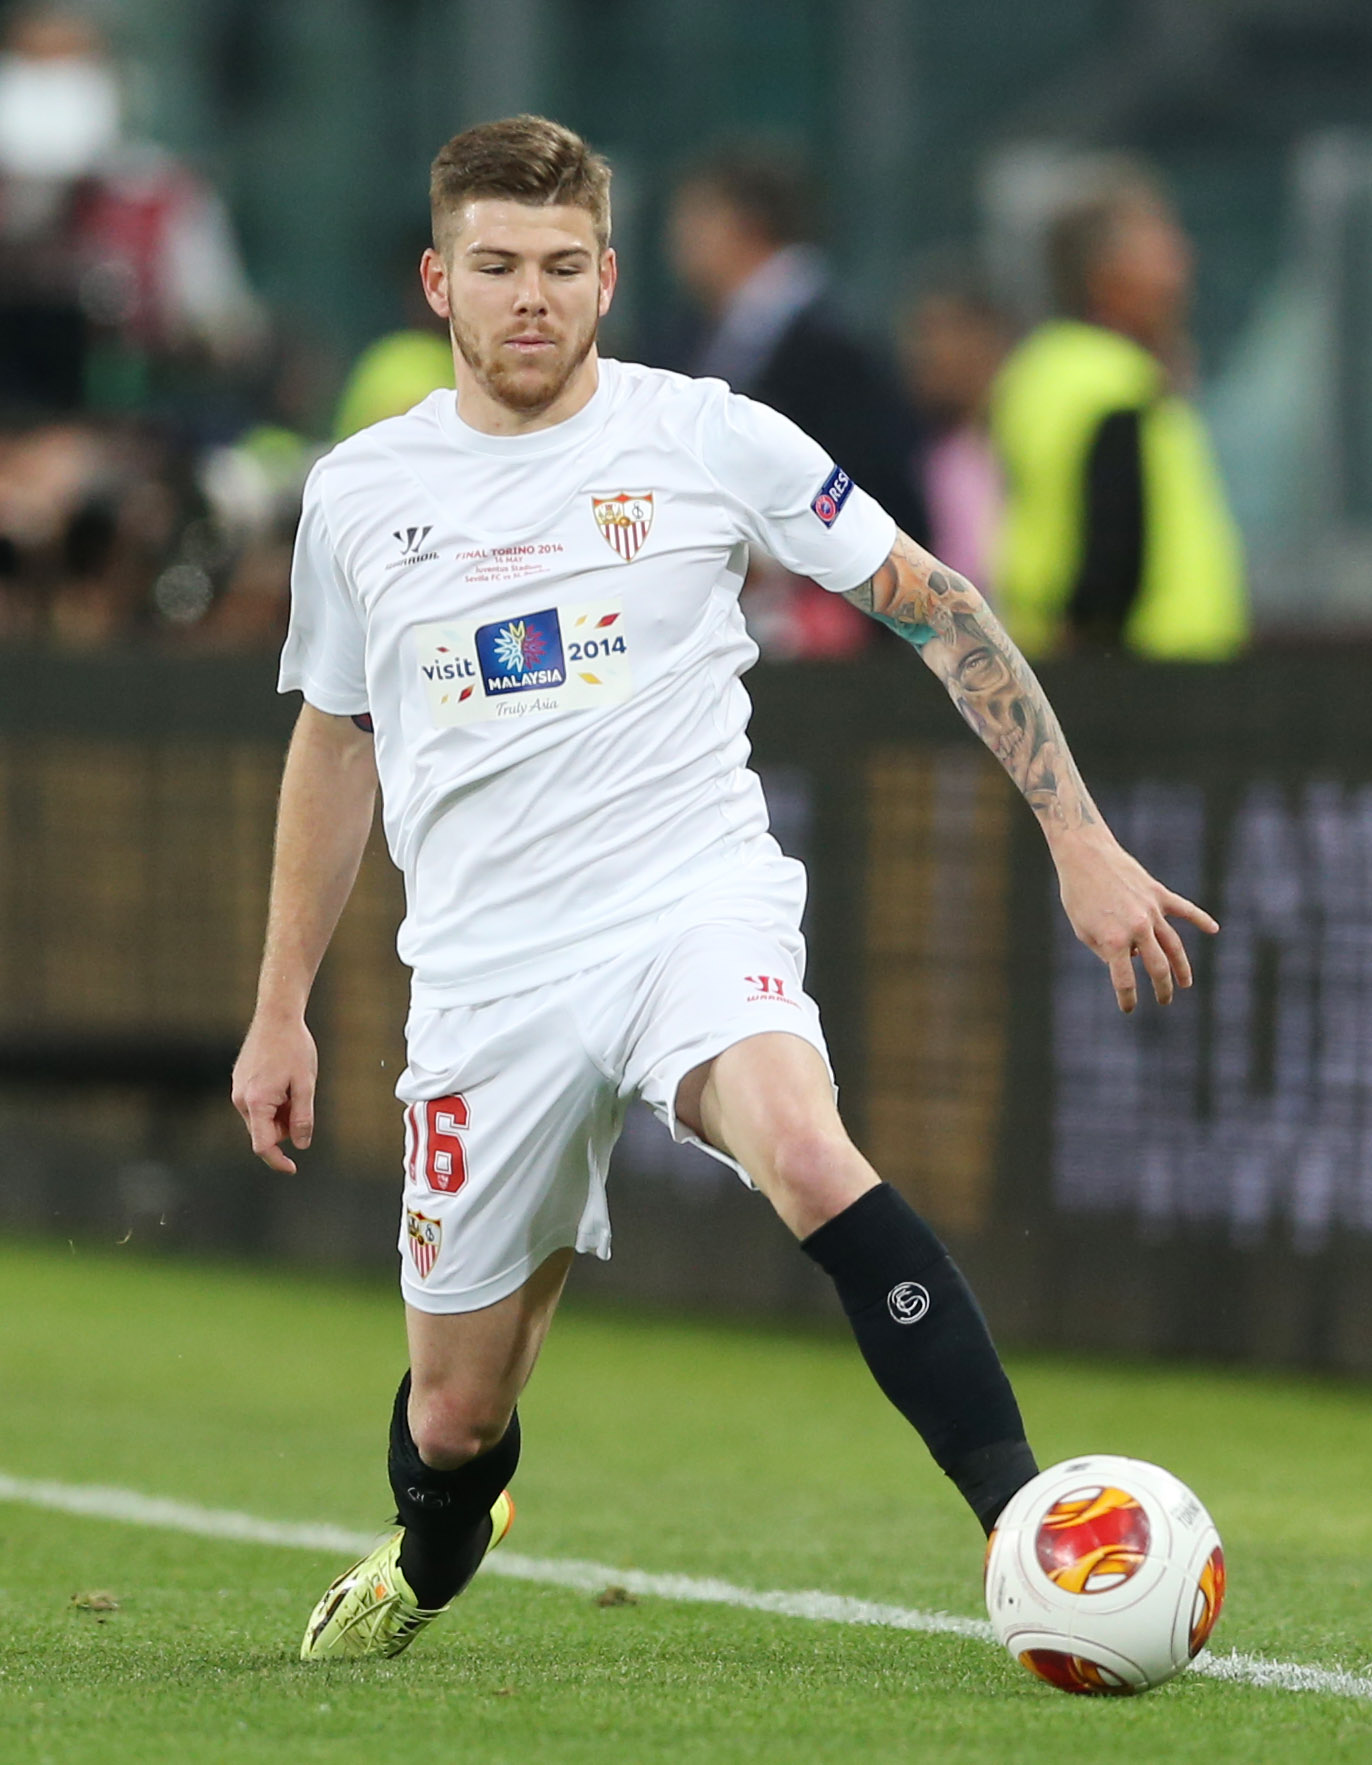 Alberto Moreno in action for Sevilla last term. Picture: Action Images